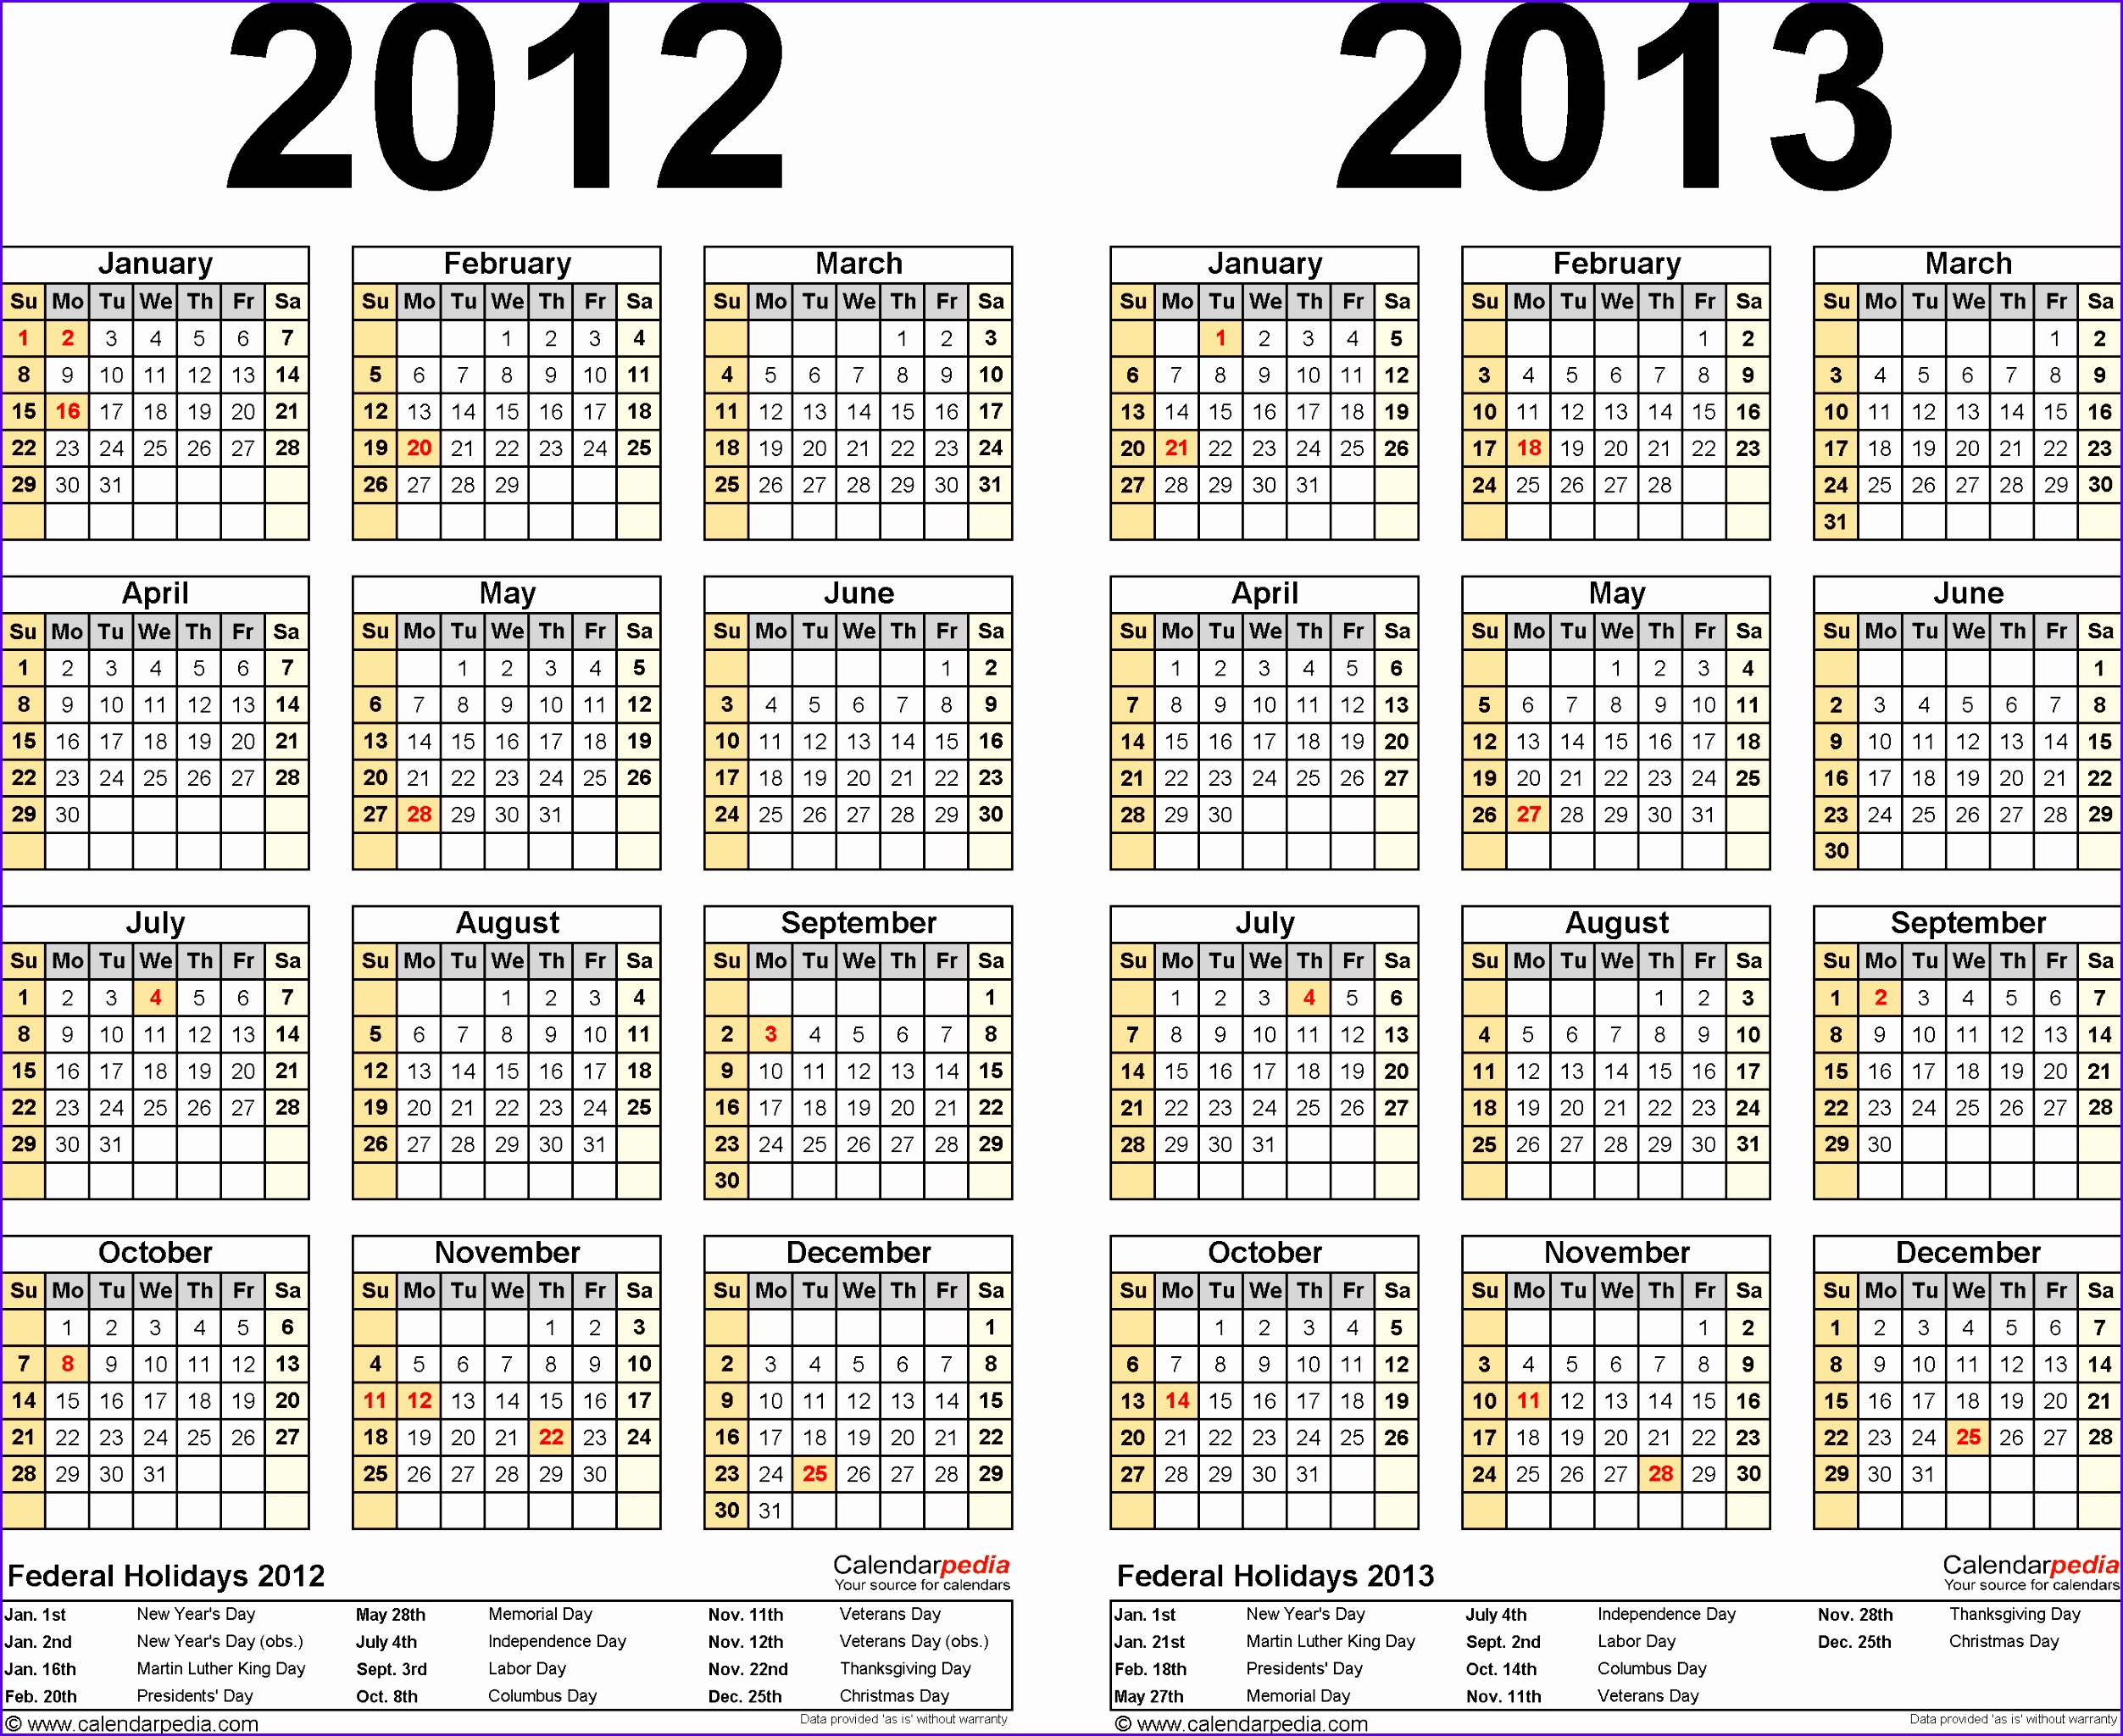 Template 2 Excel template for two year calendar 2012 2013 landscape orientation 25052048